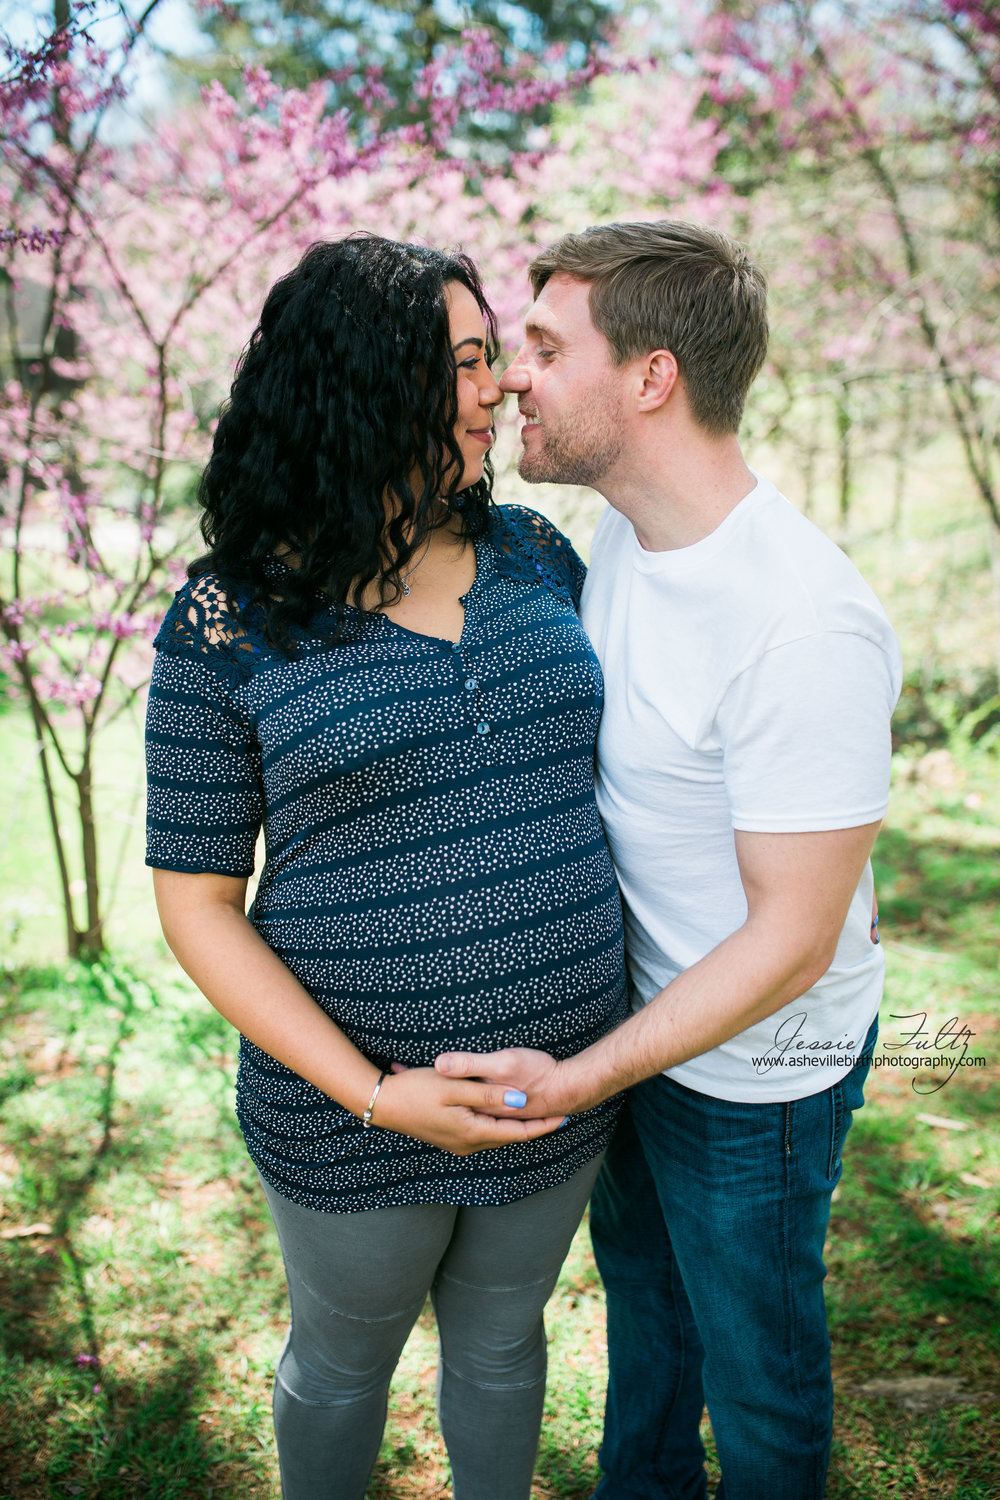 pregnant woman and her husband rubbing noses in front of cherry blossoms